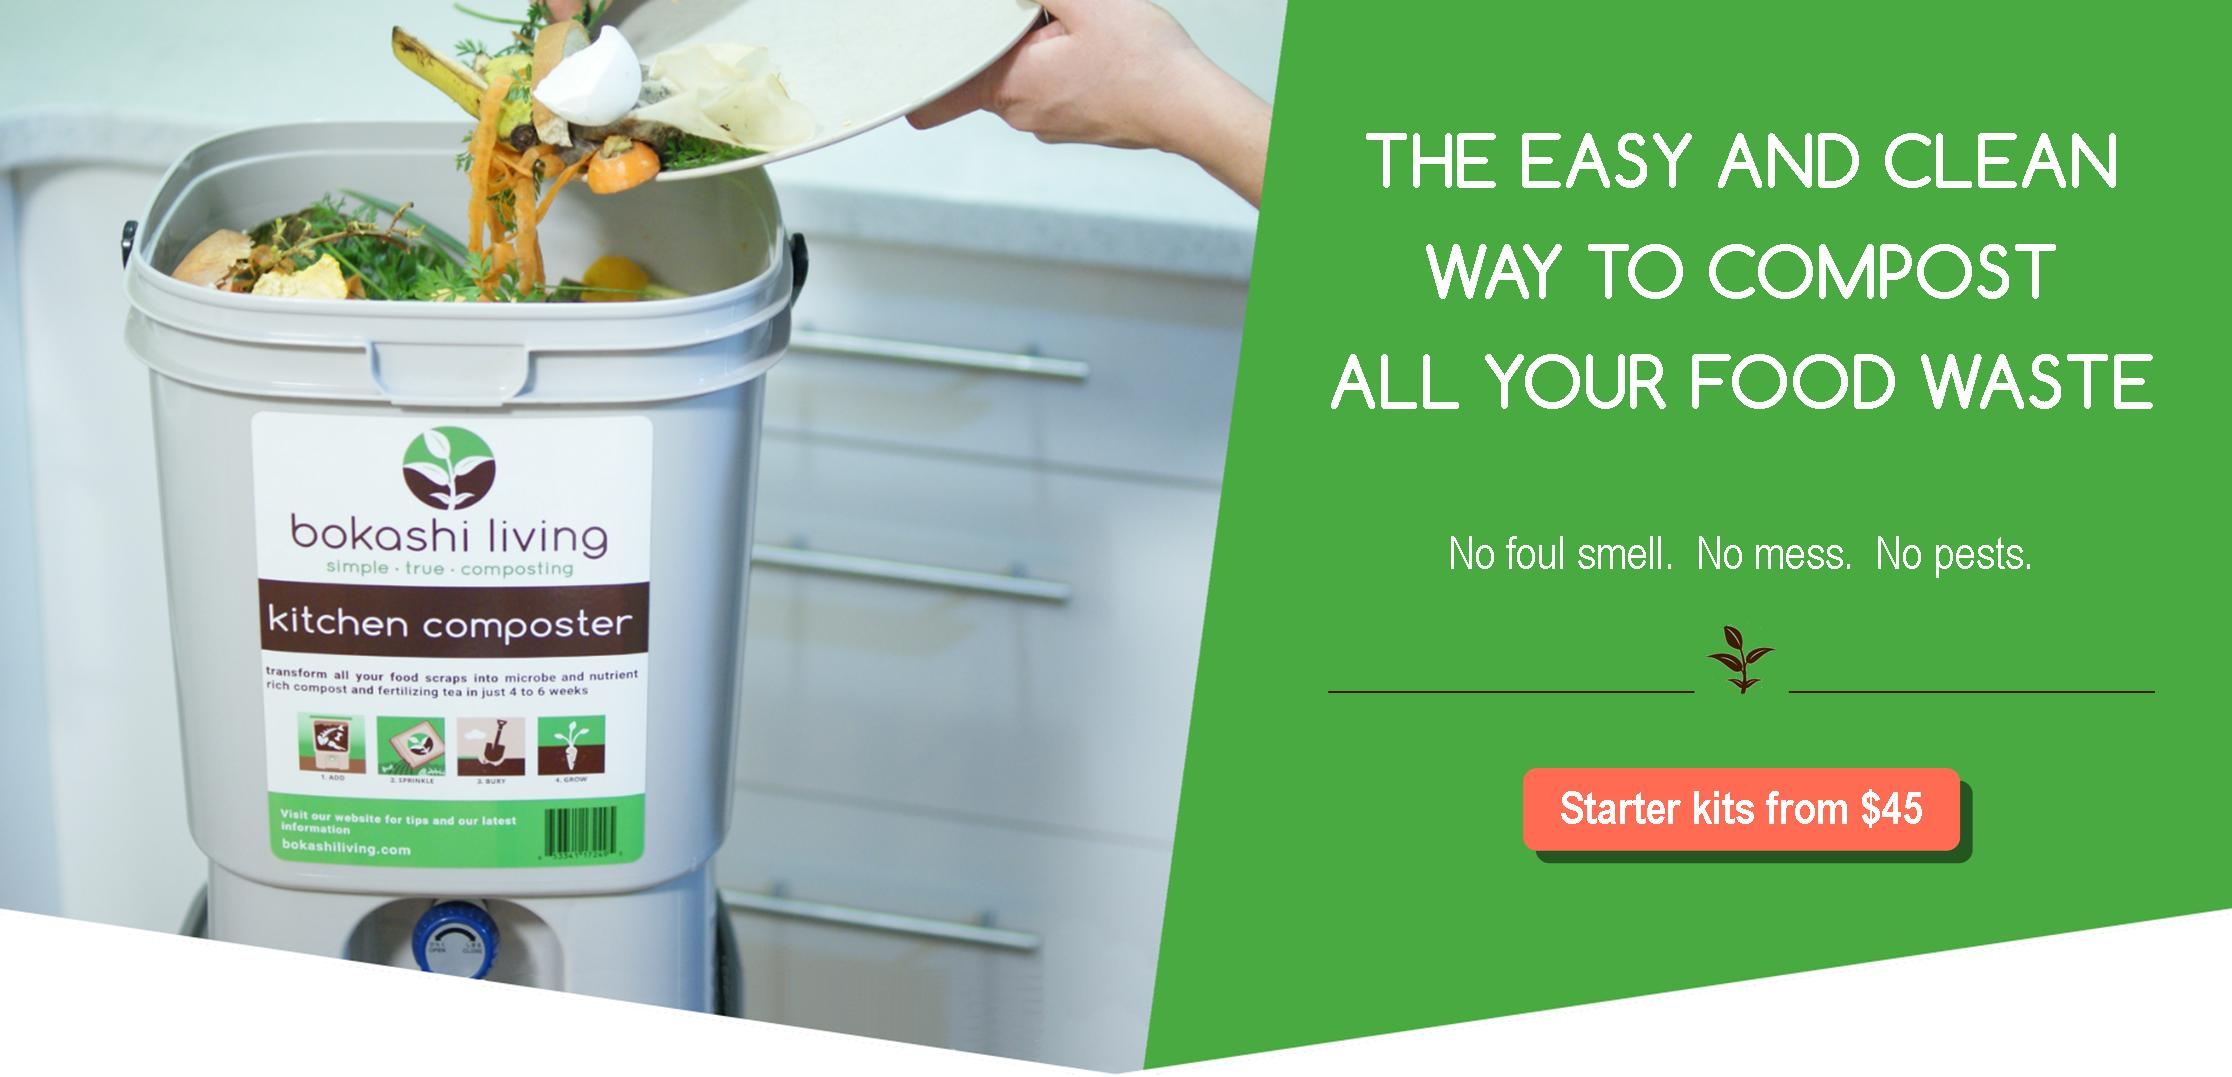 Bokashi composting: The easy and clean way to compost all your food waste. No foul odor. No mess. No pests.